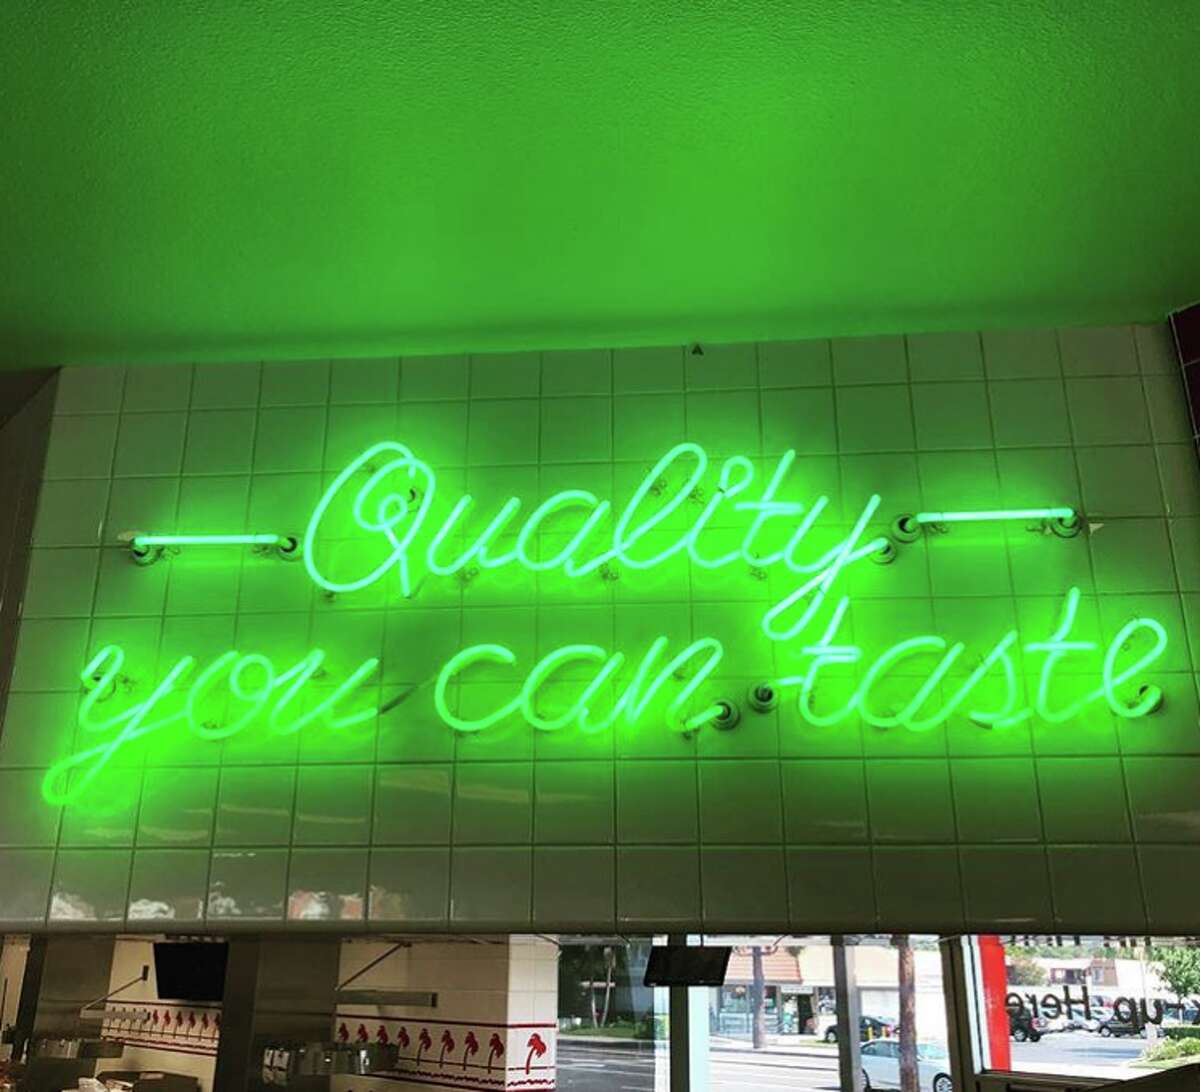 The neon sign at a handful of In-N-Out restaurants have been updated to a green glow, which the company says is a throwback to the signage from the original In-N-Out.